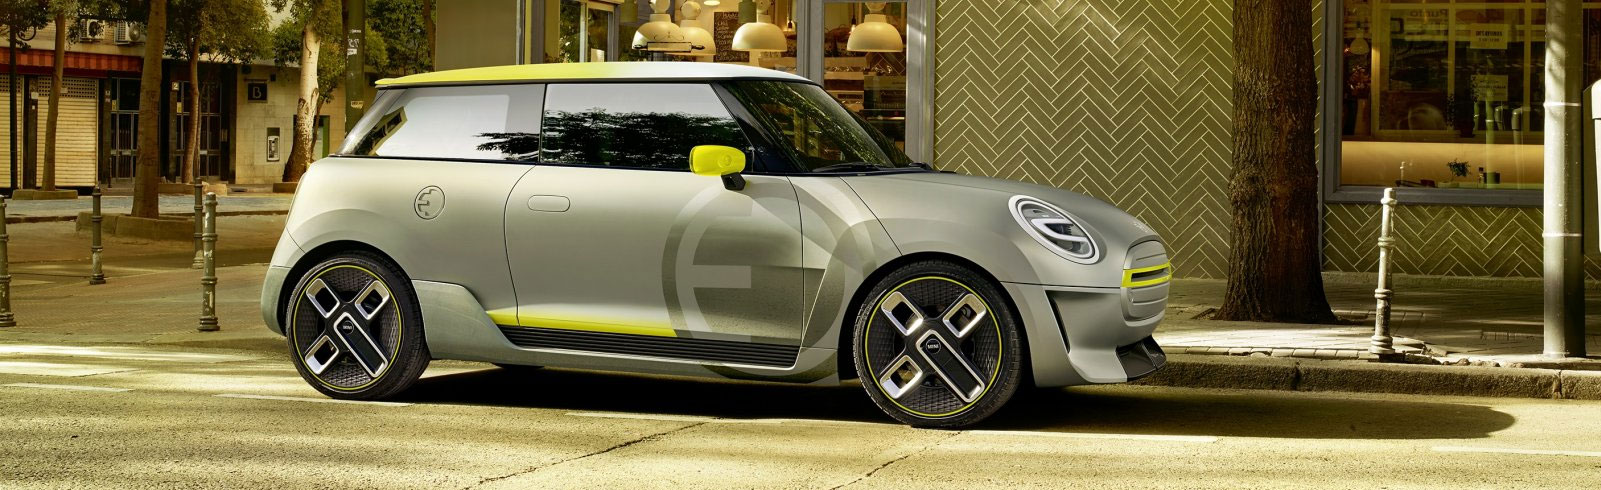 MINI Cooper SE has 45,000 registrations 18 days after pre-orders are open